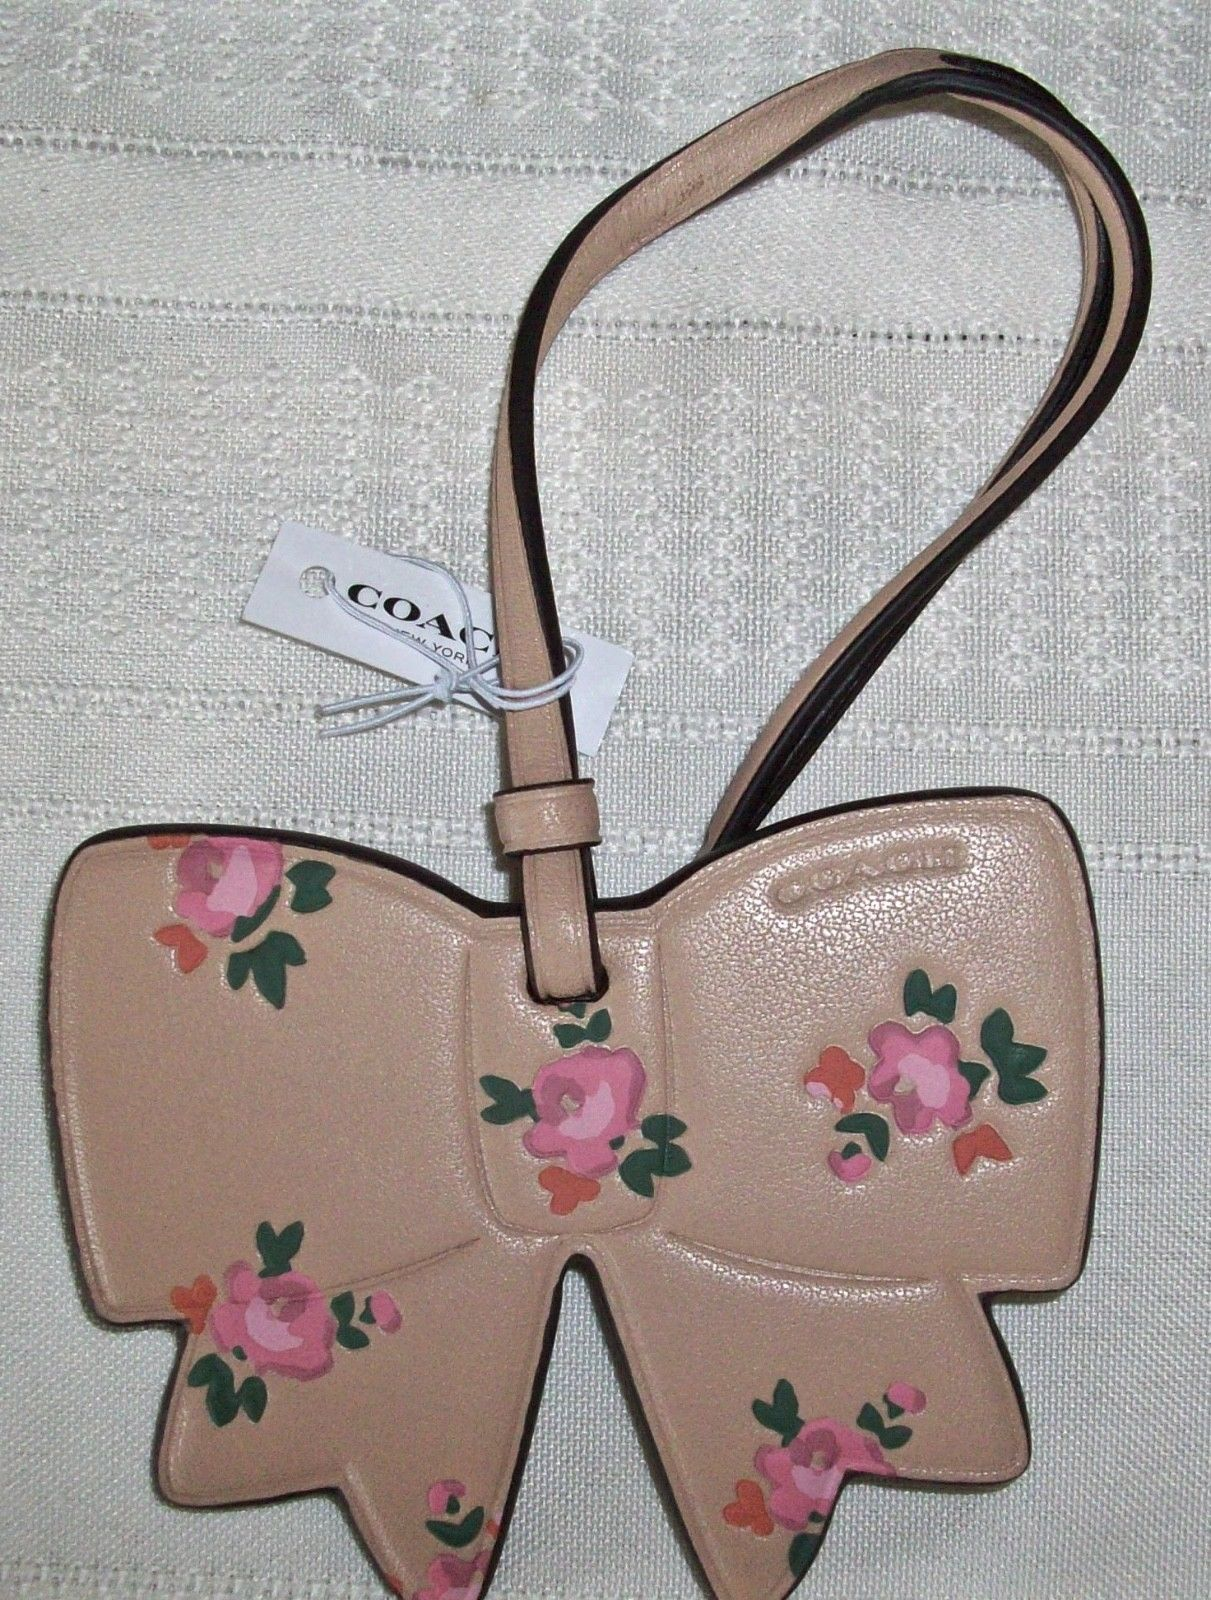 Coach Boxed Leather Printed Floral Bow Charm Ornament 27417 Beechwood image 2